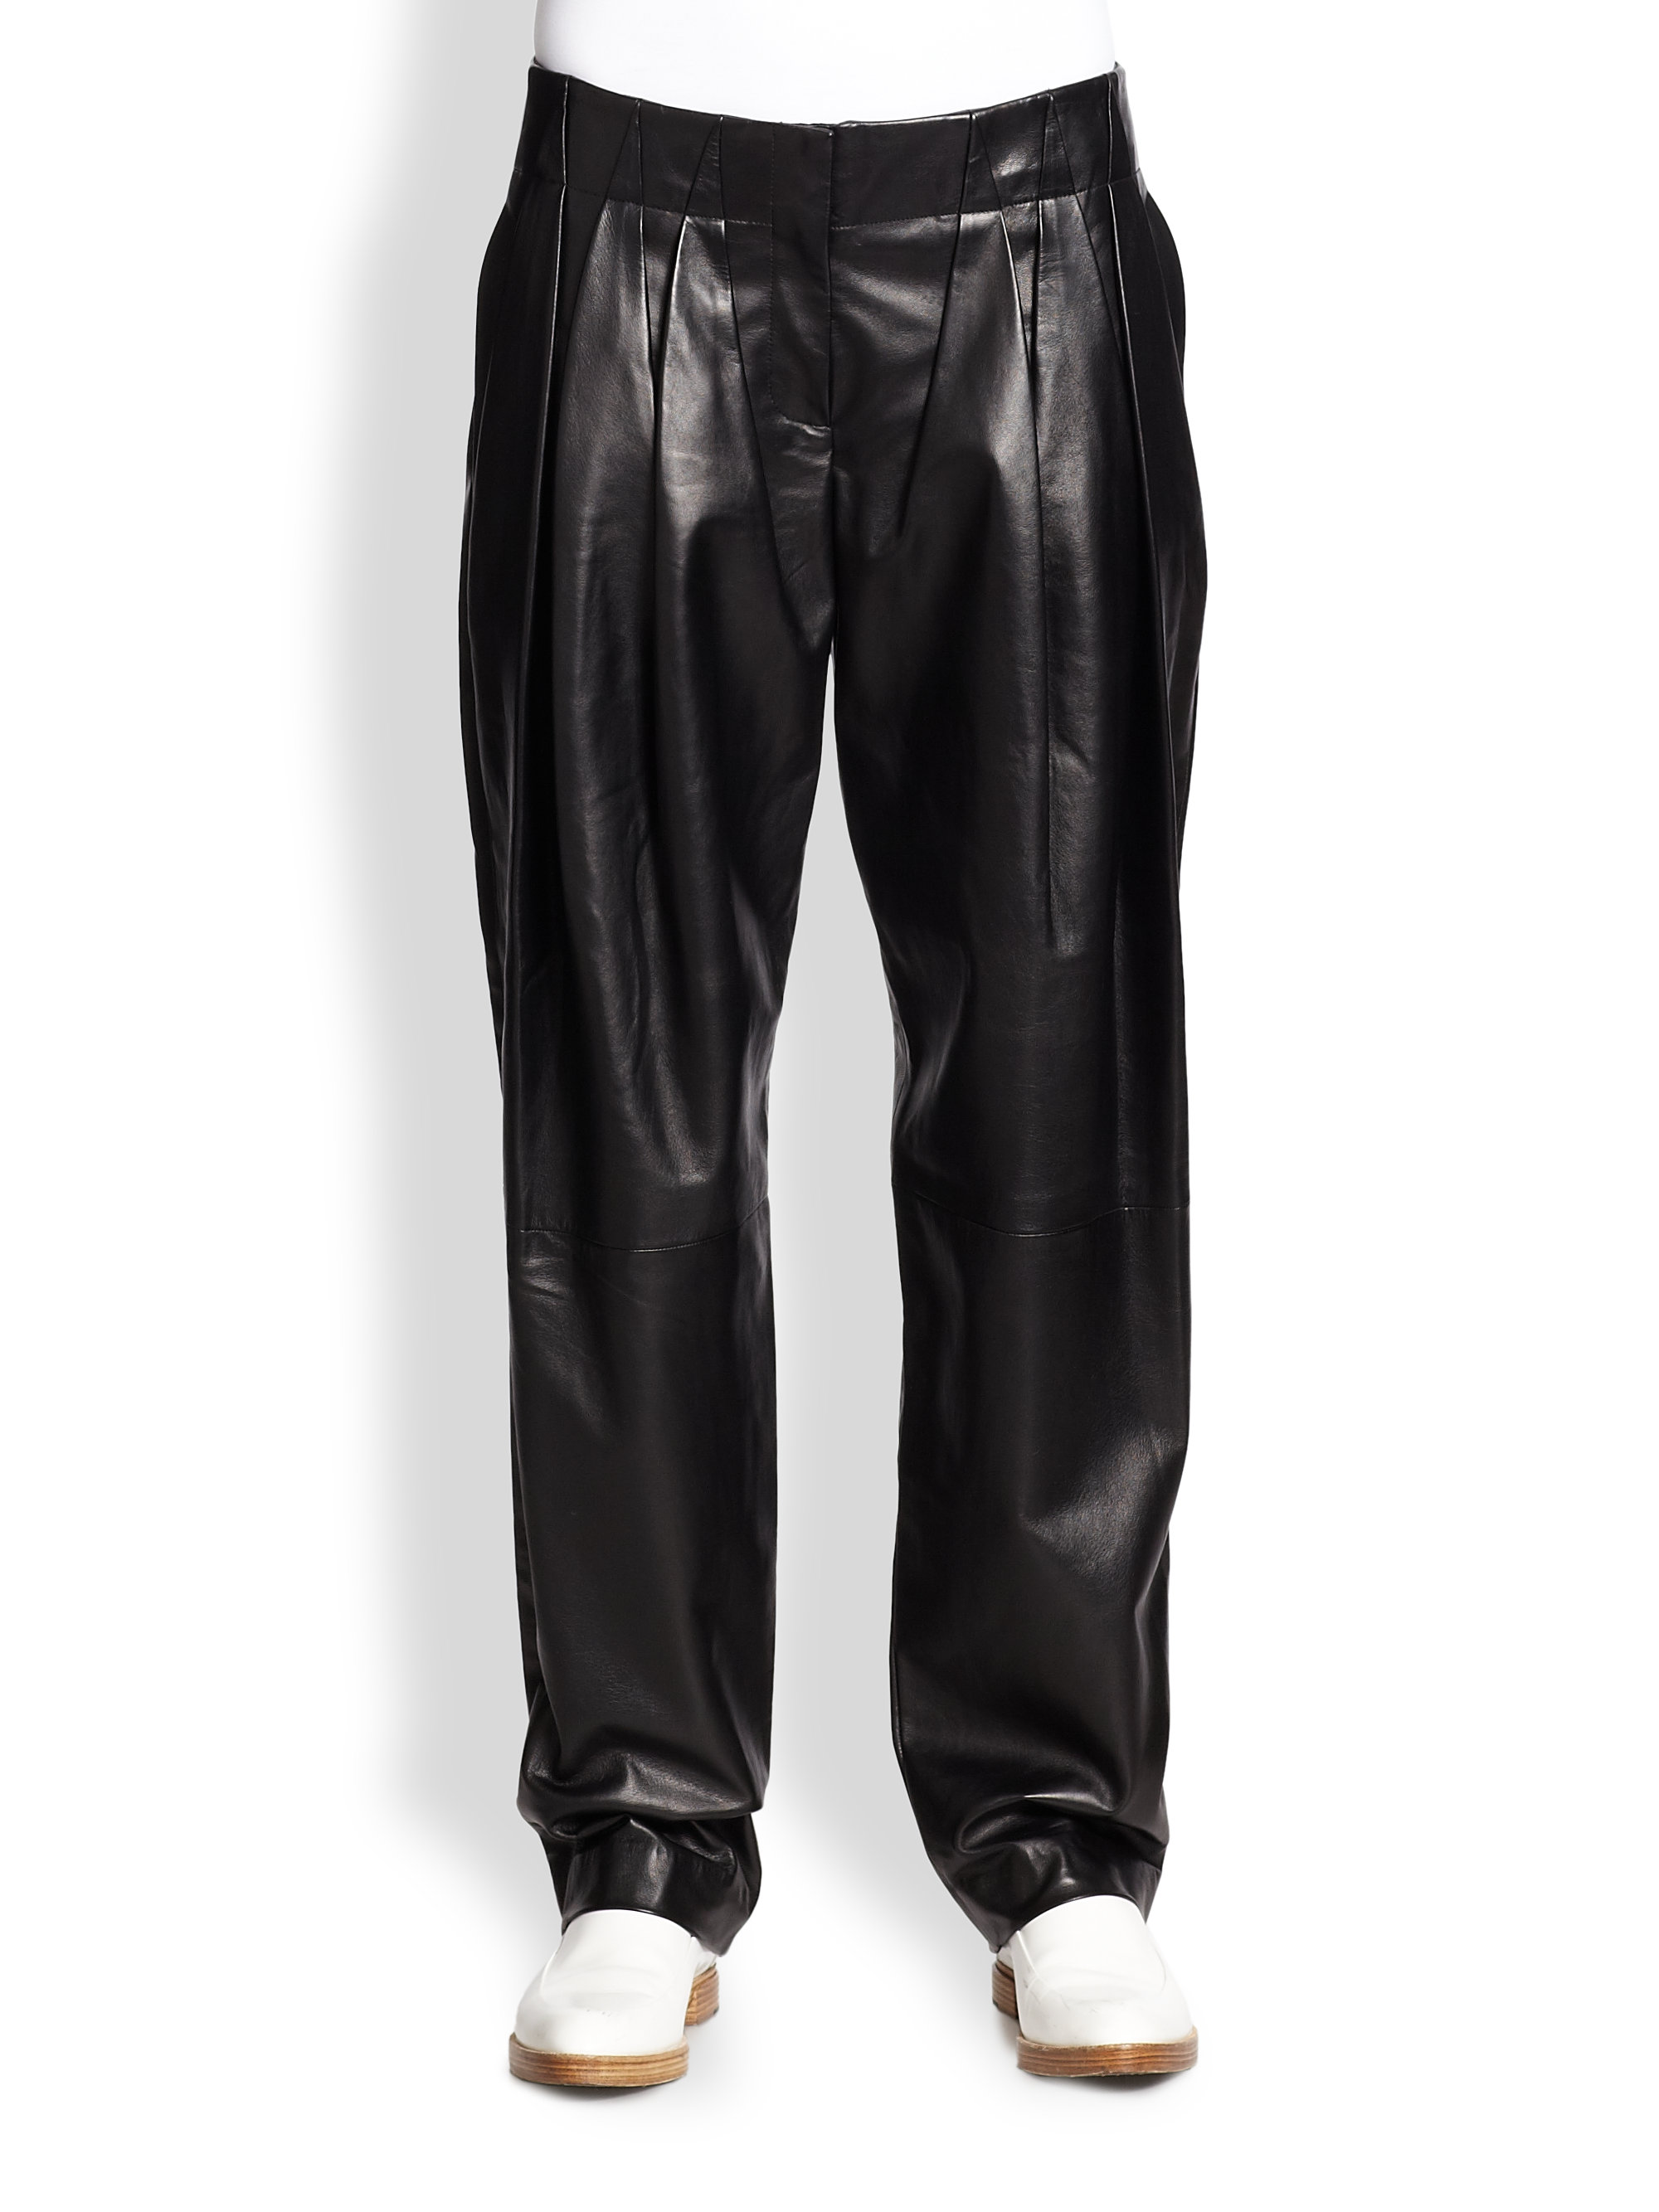 Alexander wang Pleated Leather Wideleg Pants in Black | Lyst